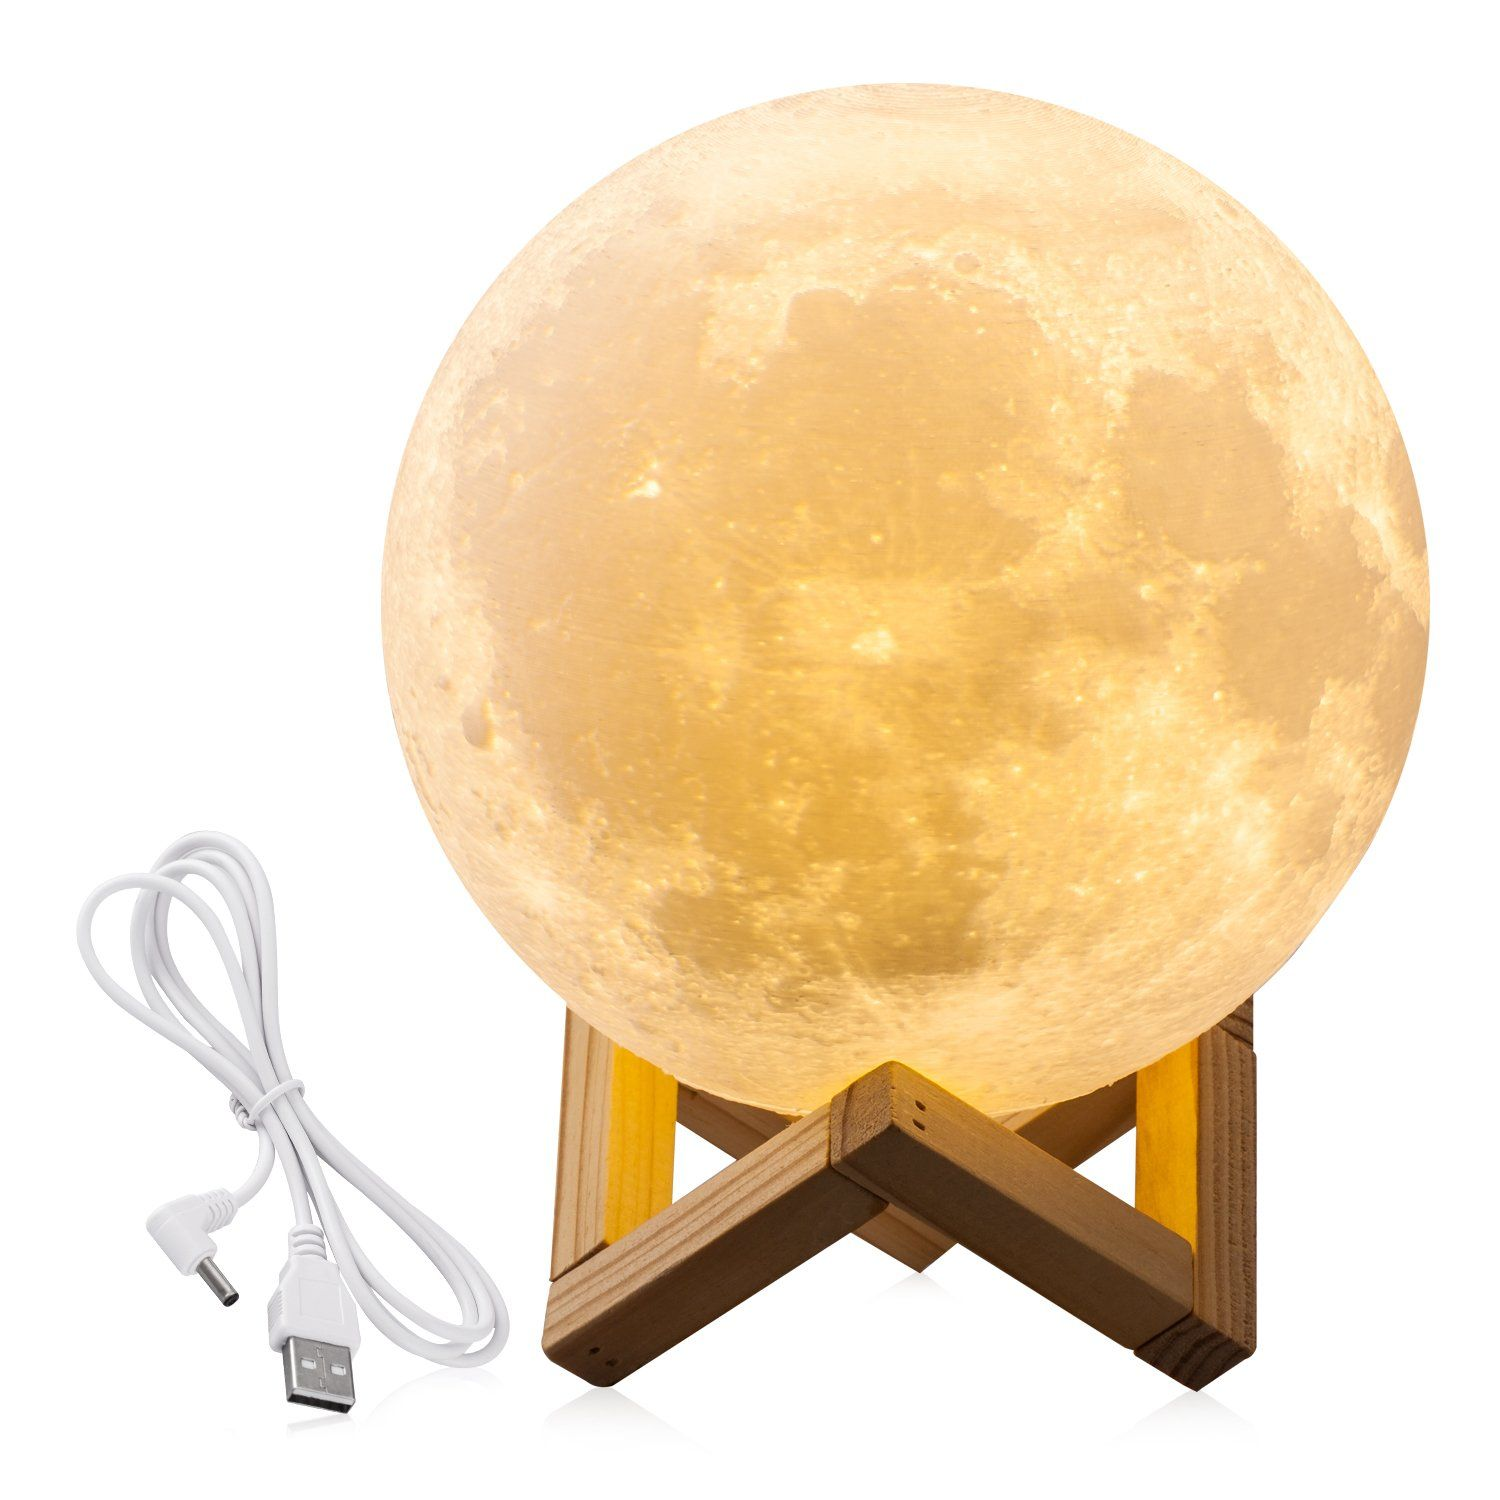 7 1inchs Cpla Lighting Night Light Led 3d Printing Moon Lamp Lunar Lamp Warm And Cool White Dimmable Touch Decorative Night Lights Night Light Lamp Night Light